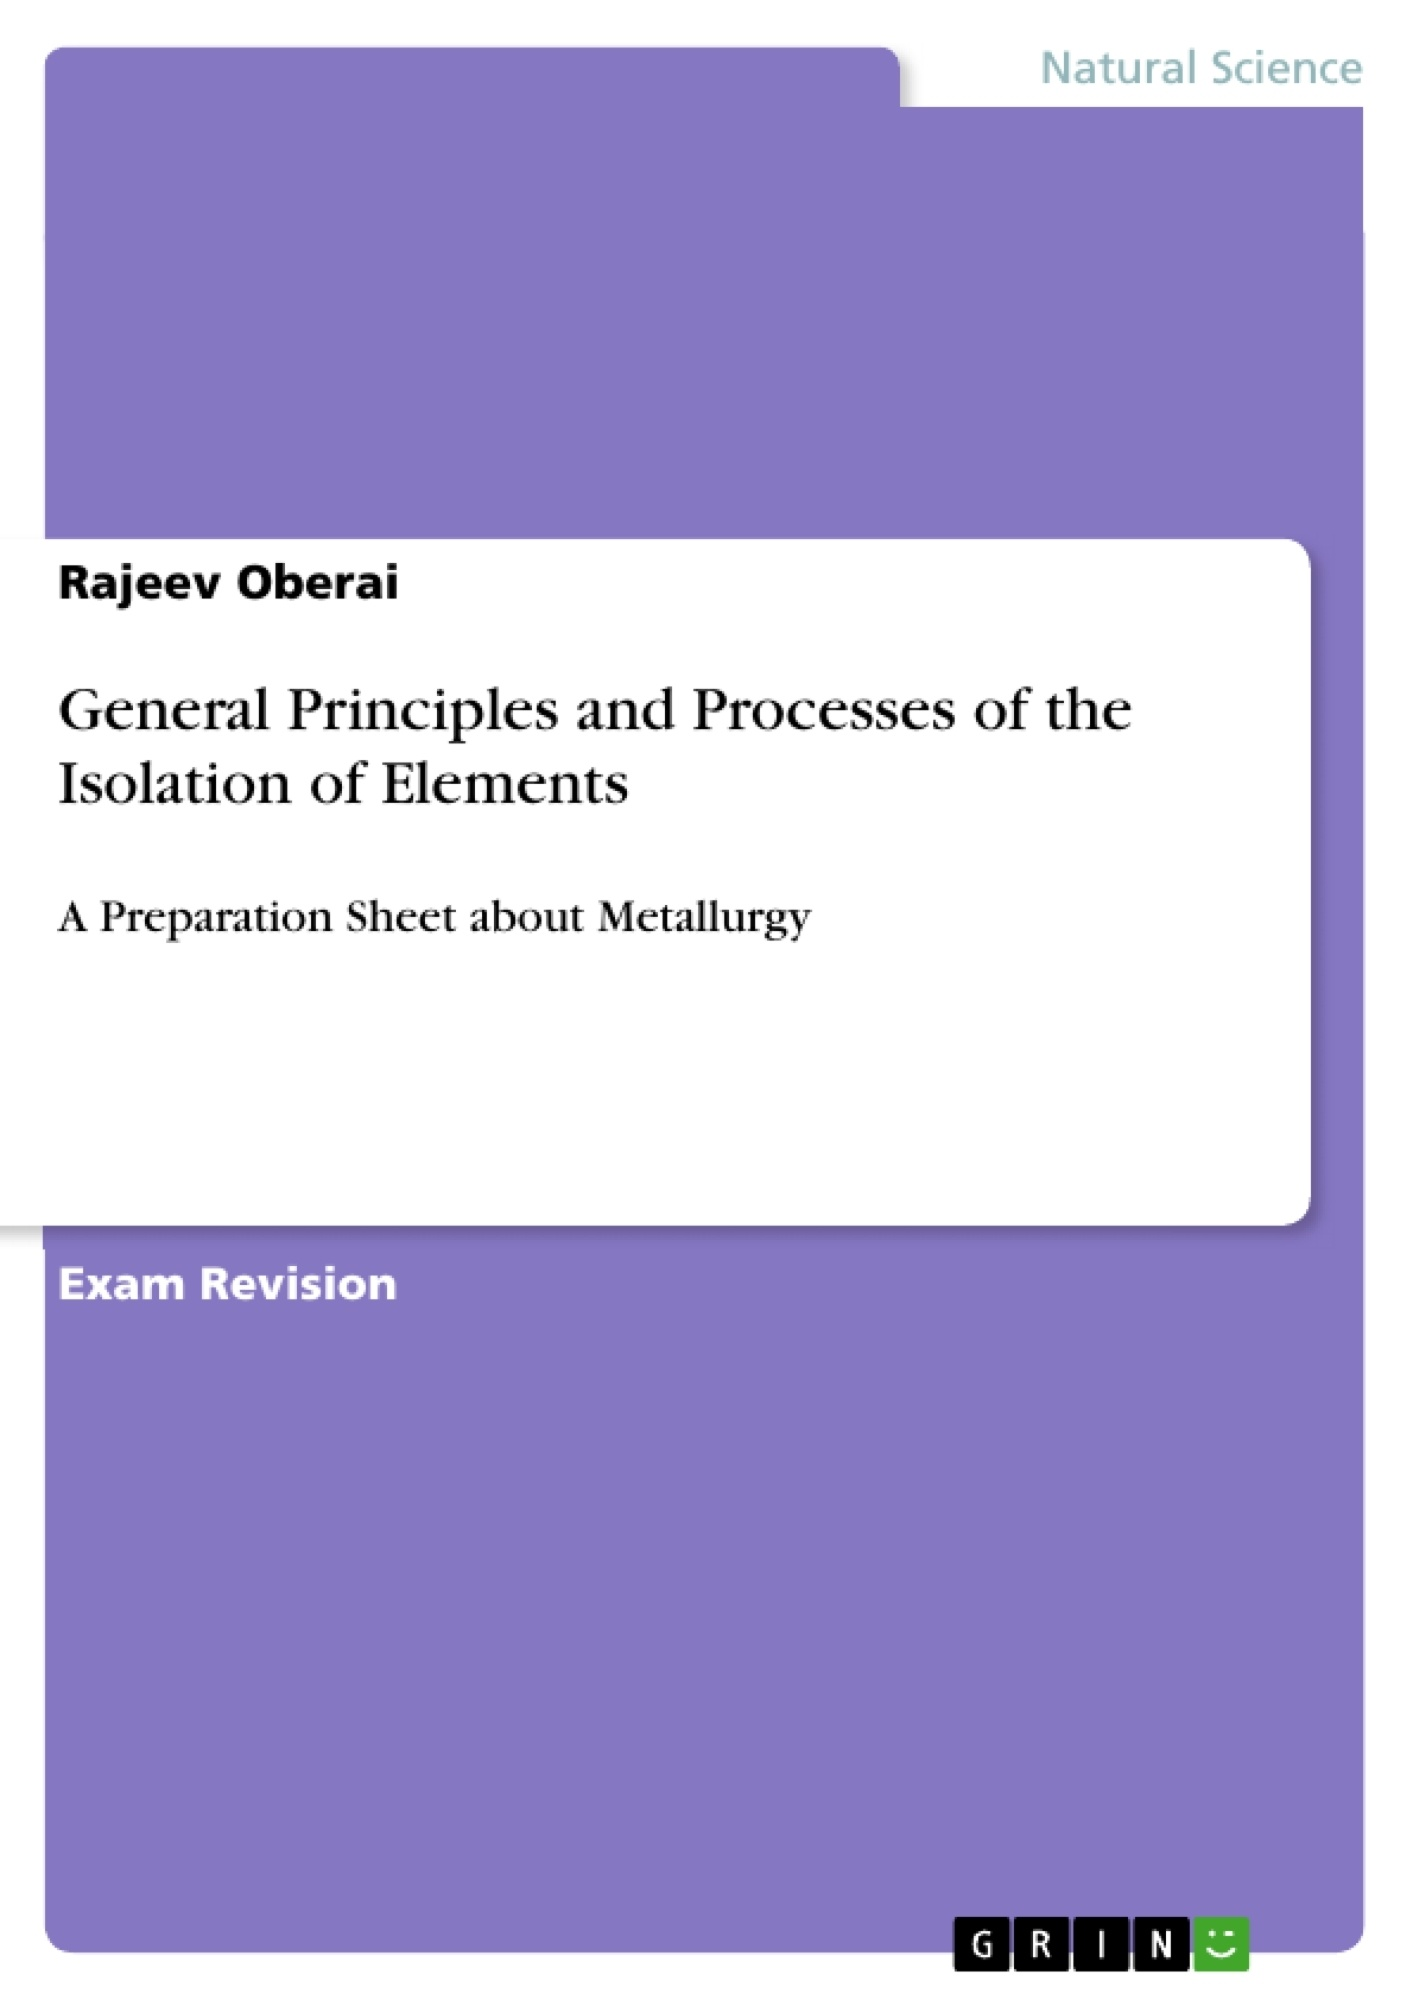 Title: General Principles and Processes of the Isolation of Elements